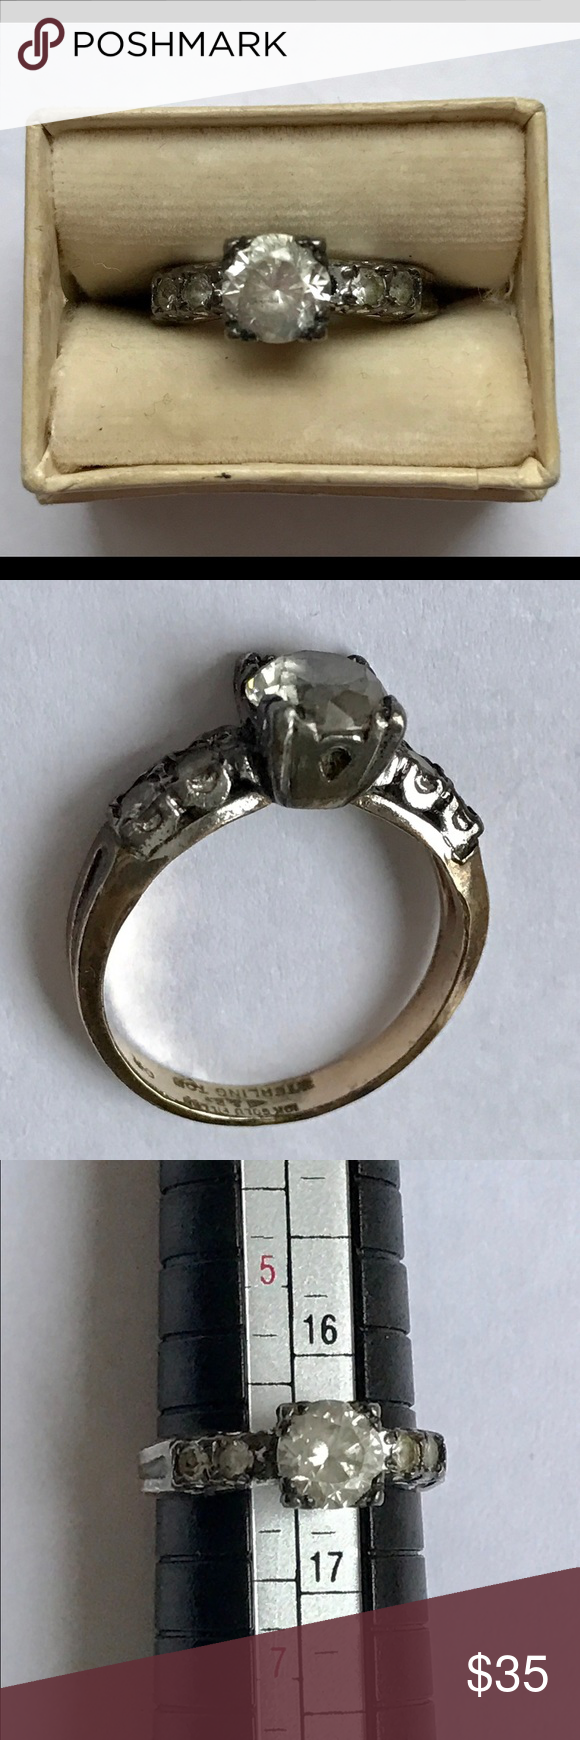 10k Gold Filled On Sterling Silver Cz Ring Size 6 Applied Sterling Silver Top 10k Gold Filled Body By Clar Sterling Silver Cz Rings Silver Tops Vintage Rings